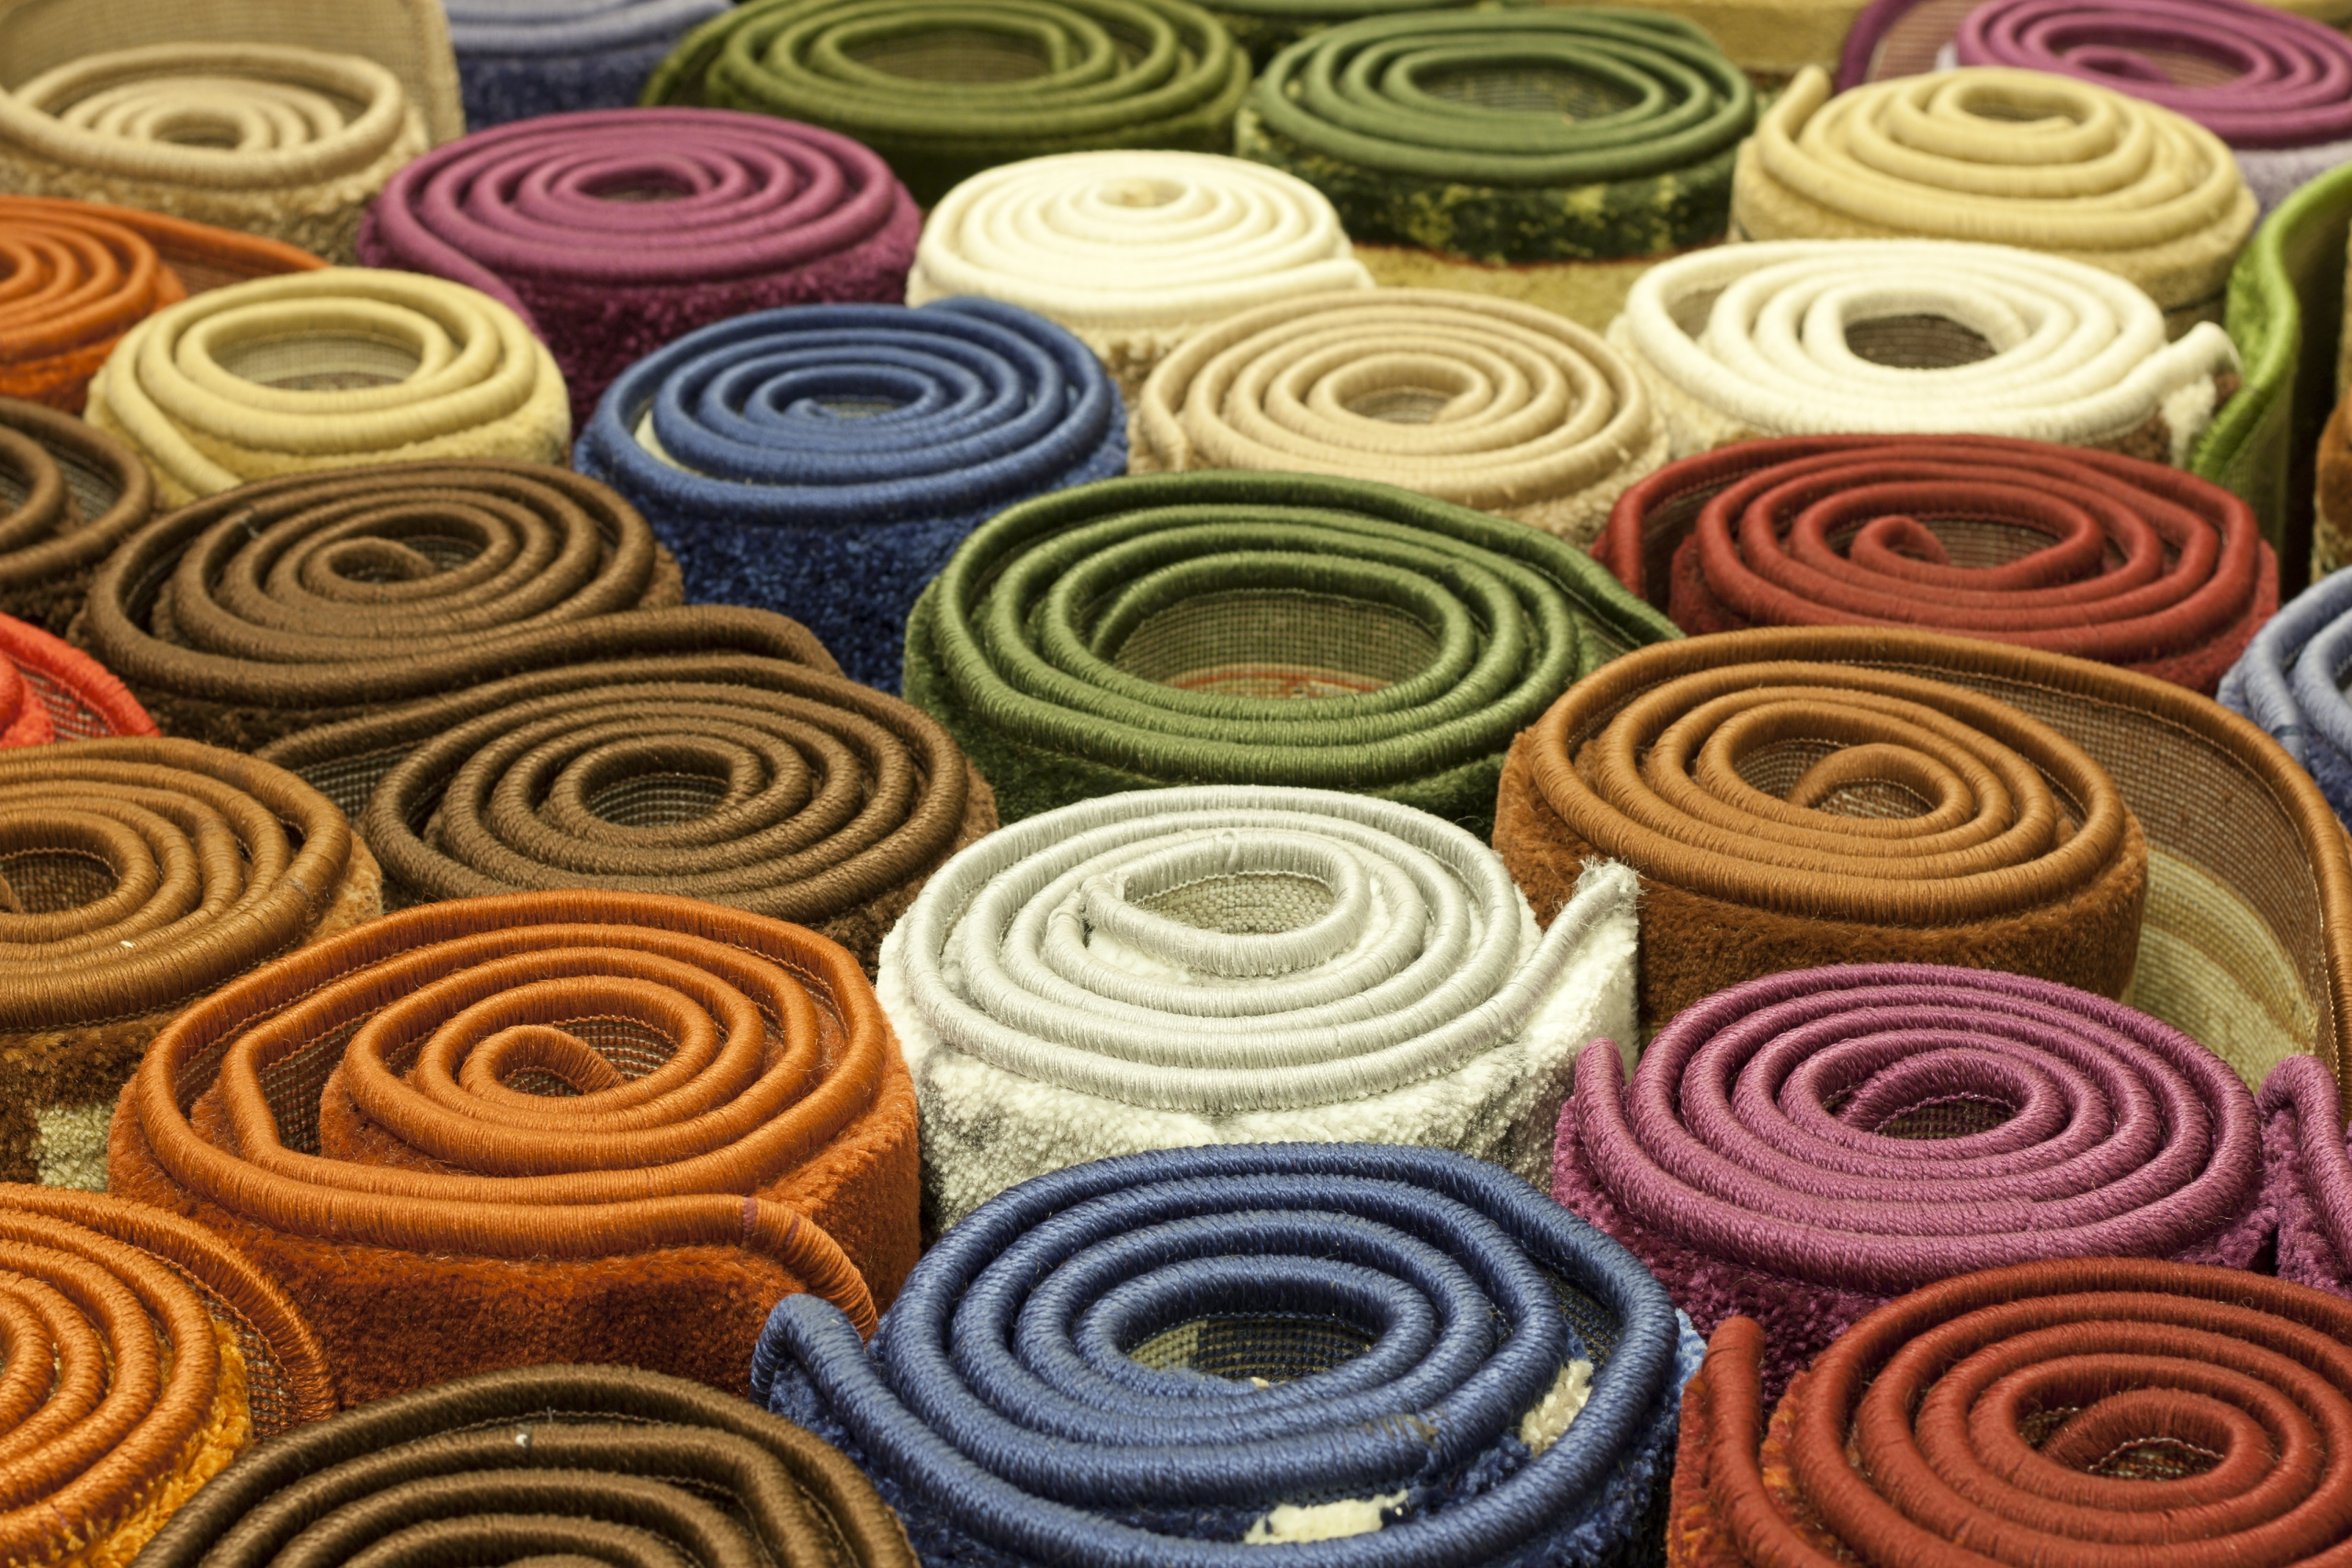 Rows of rolled up rugs